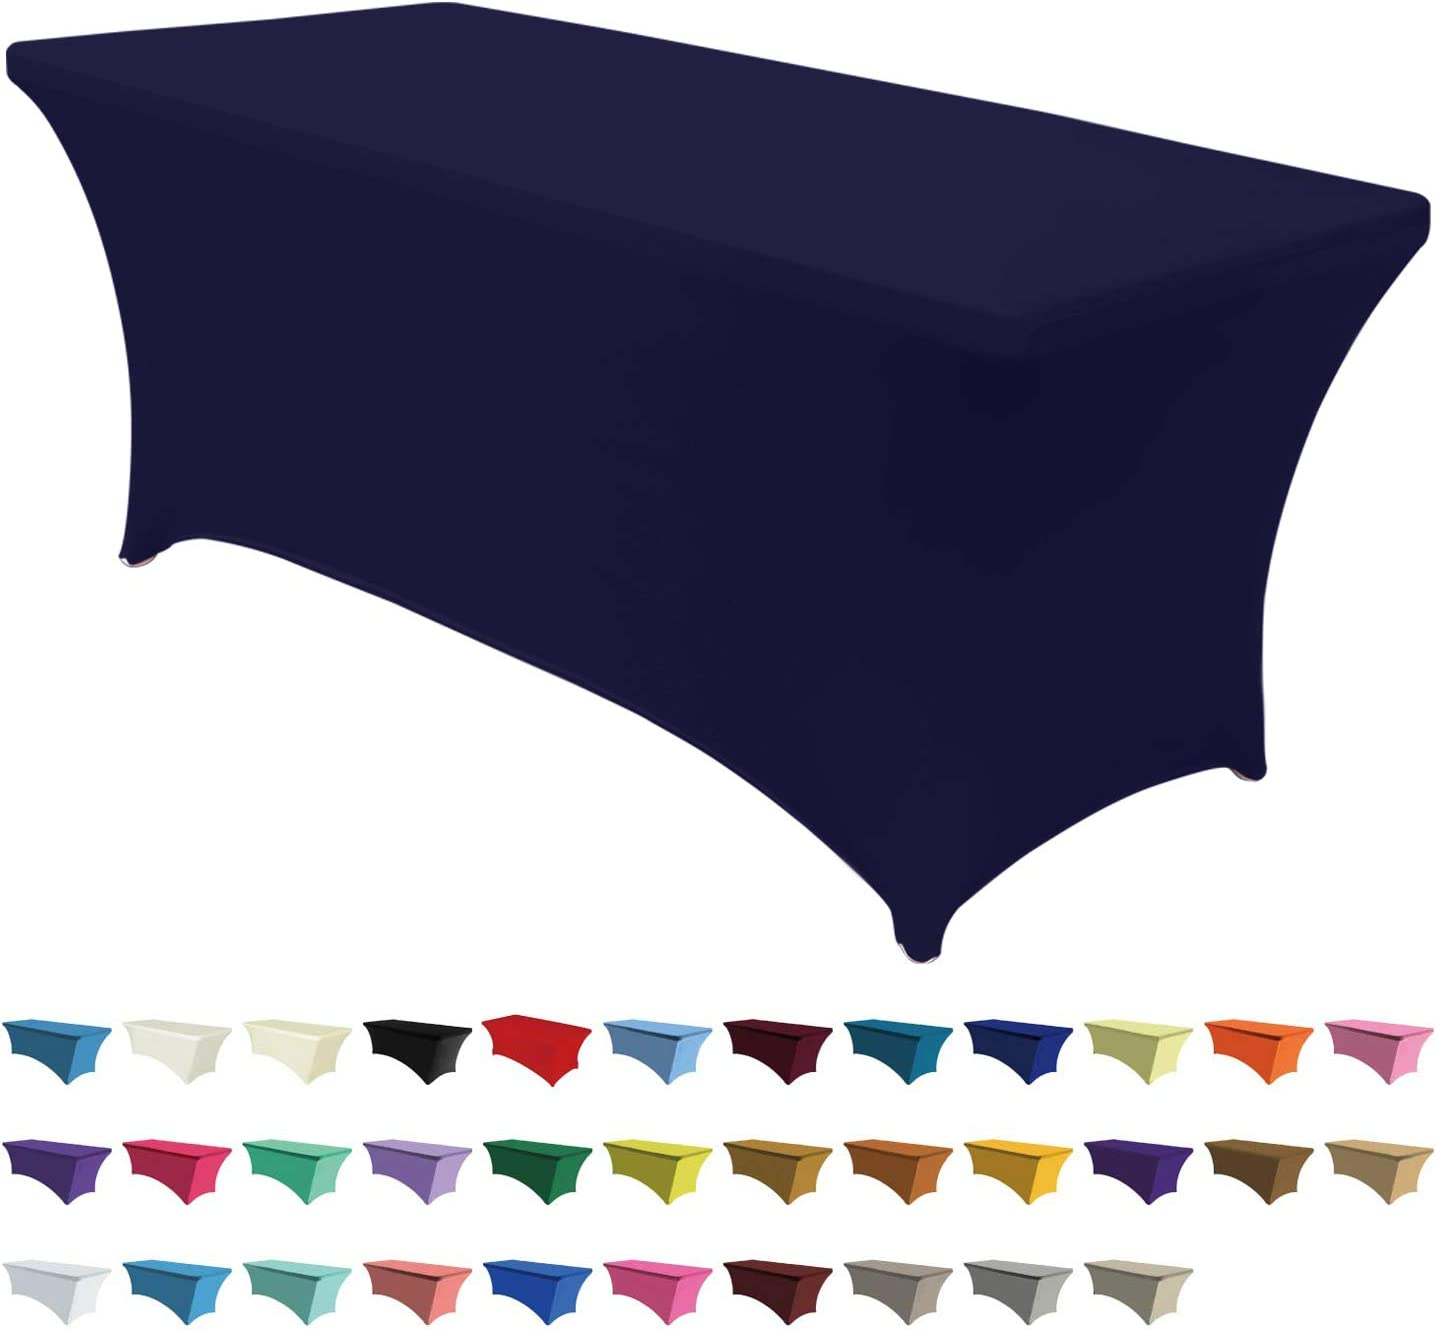 ABCCANOPY Spandex Tablecloths for 5 ft Home Rectangular Table Fitted Stretch Table Cover Polyester Tablecover Lash Bed Cover Table Toppers Massage Table Cover, Navy Blue